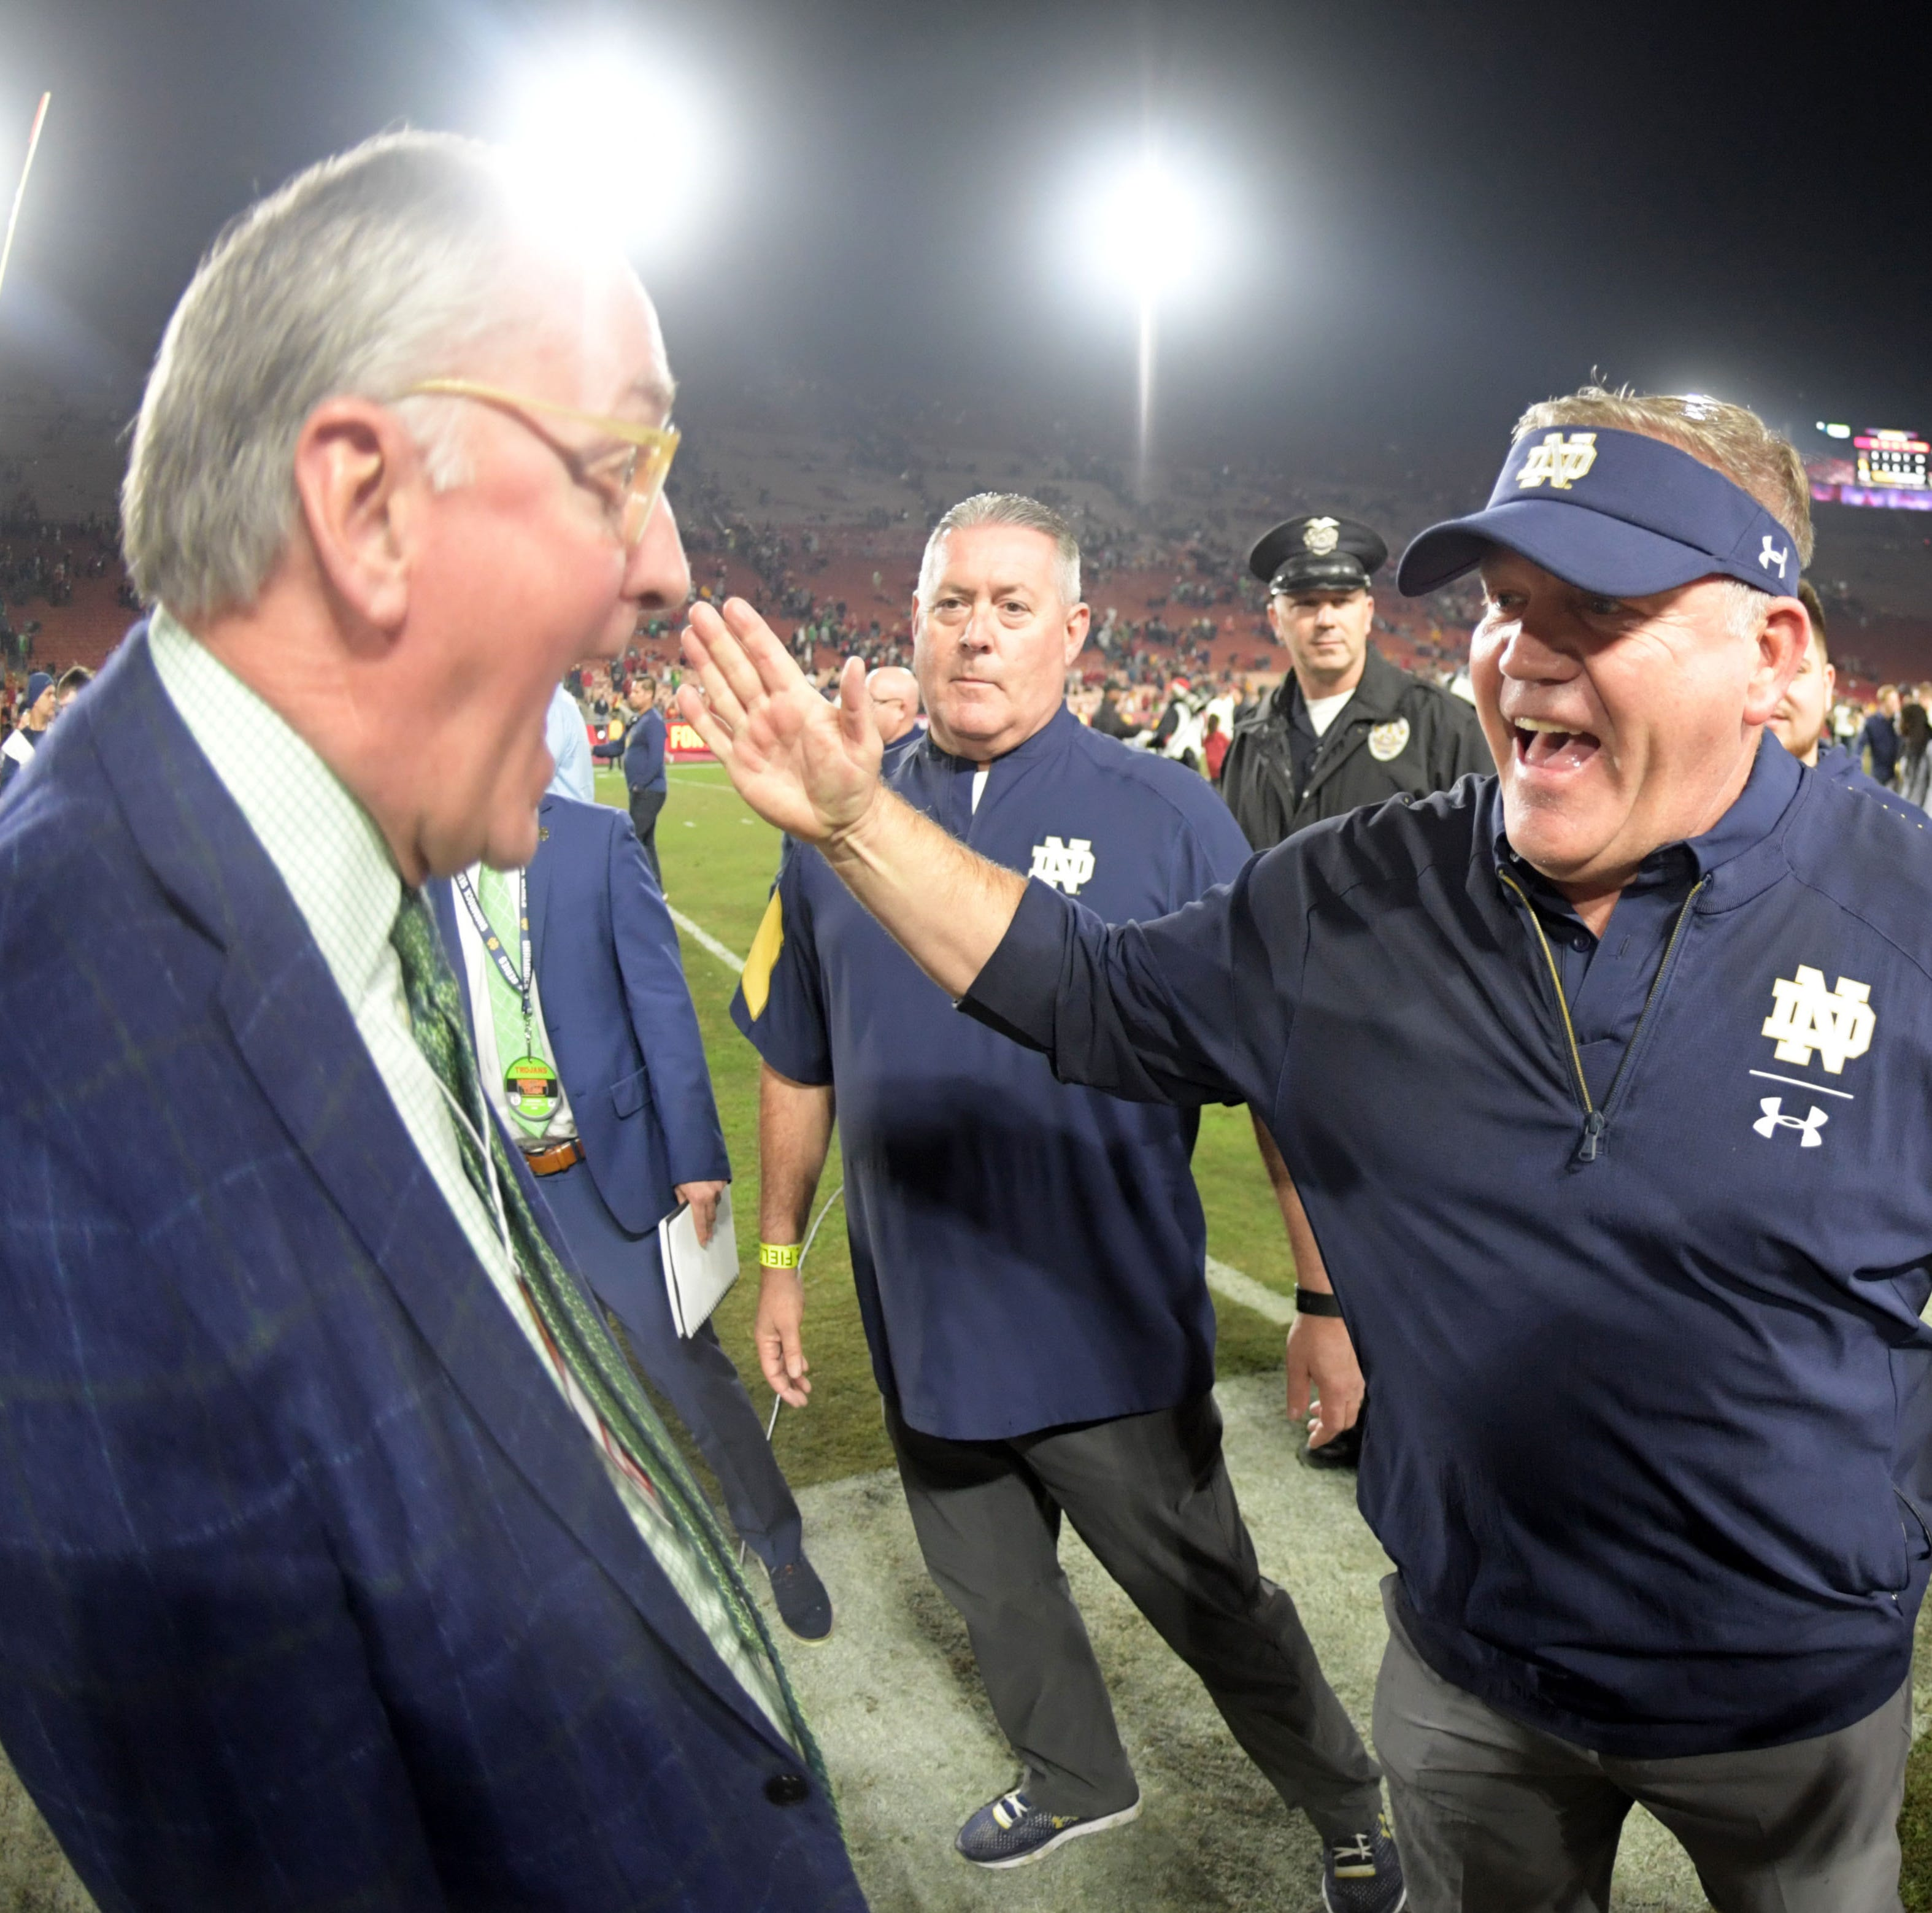 Notre Dame coach Brian Kelly relishing role as College Football Playoff novice